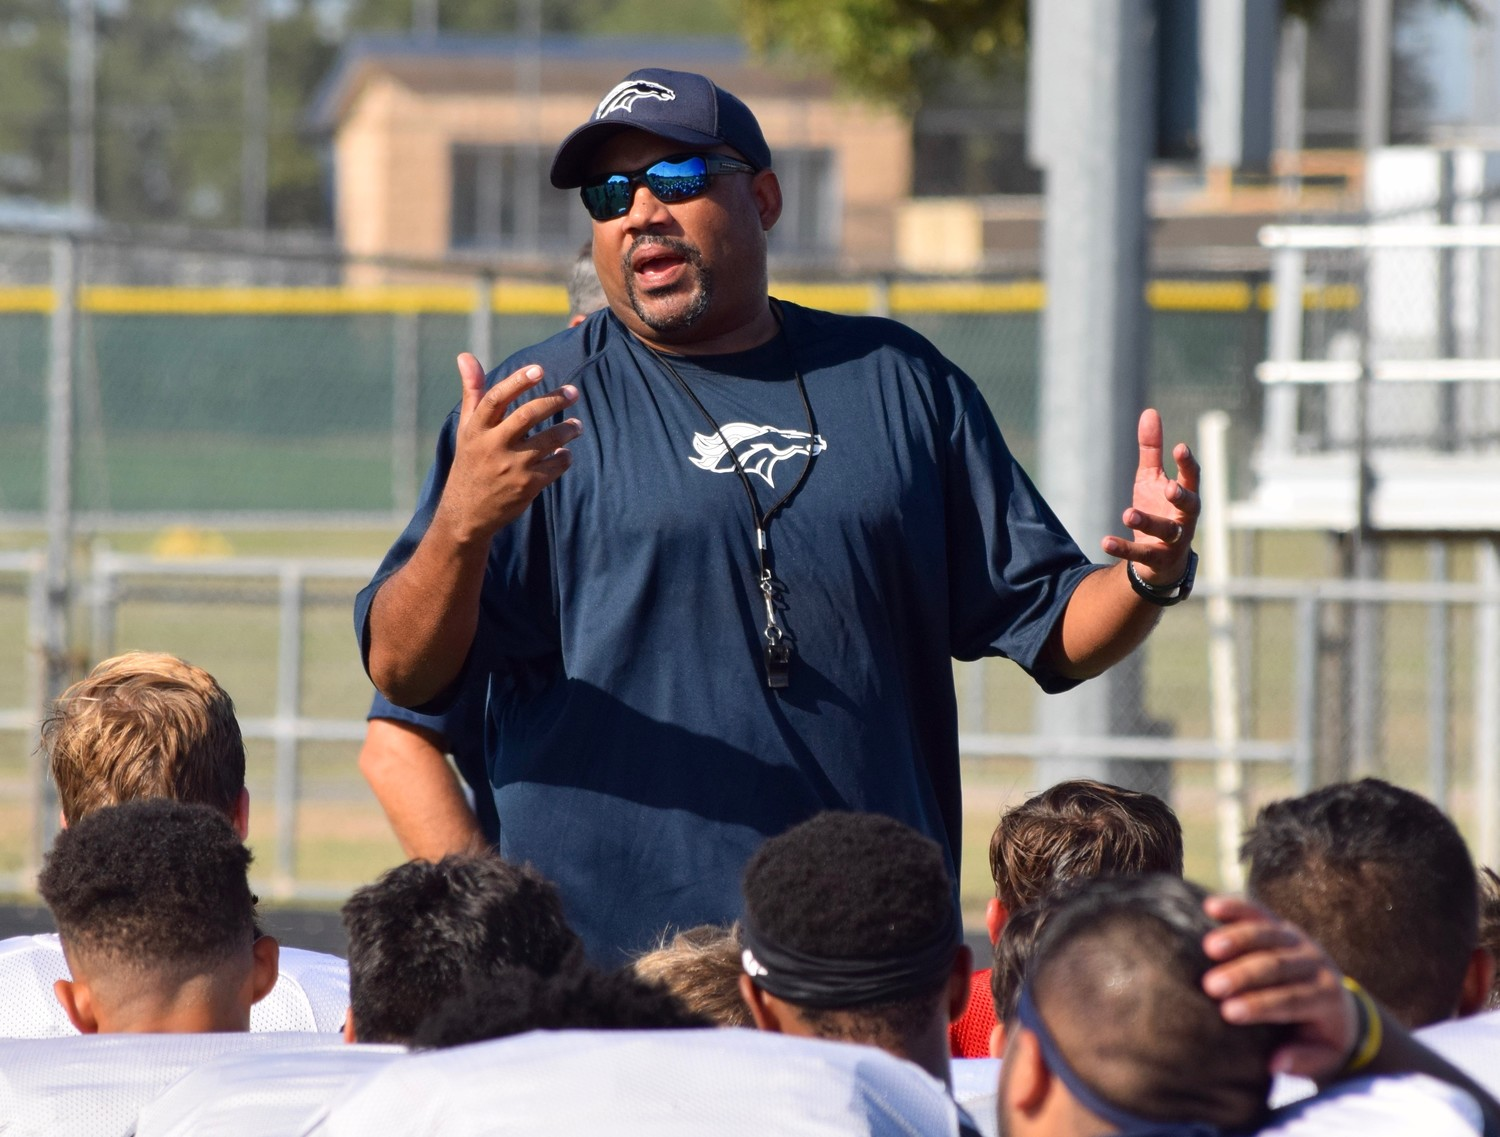 McNeil head coach Howard McMahan is hoping to change the culture of the Mavericks after missing the playoffs in the first two seasons at the helm.